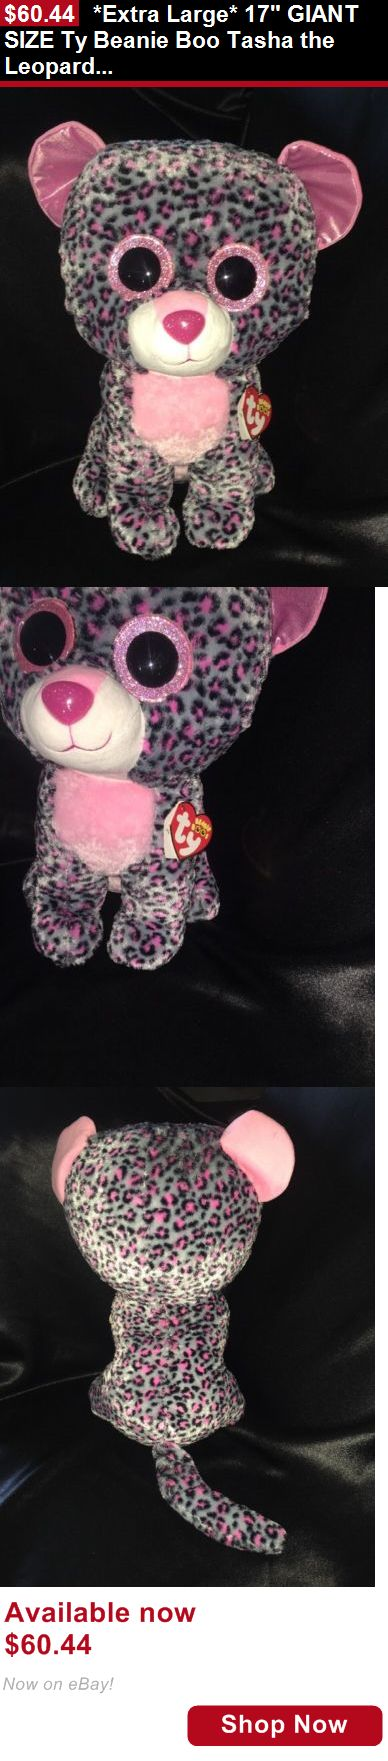 Binocular Cases And Accessories: *Extra Large* 17 Giant Size Ty Beanie Boo Tasha The Leopard New W/Tags BUY IT NOW ONLY: $60.44